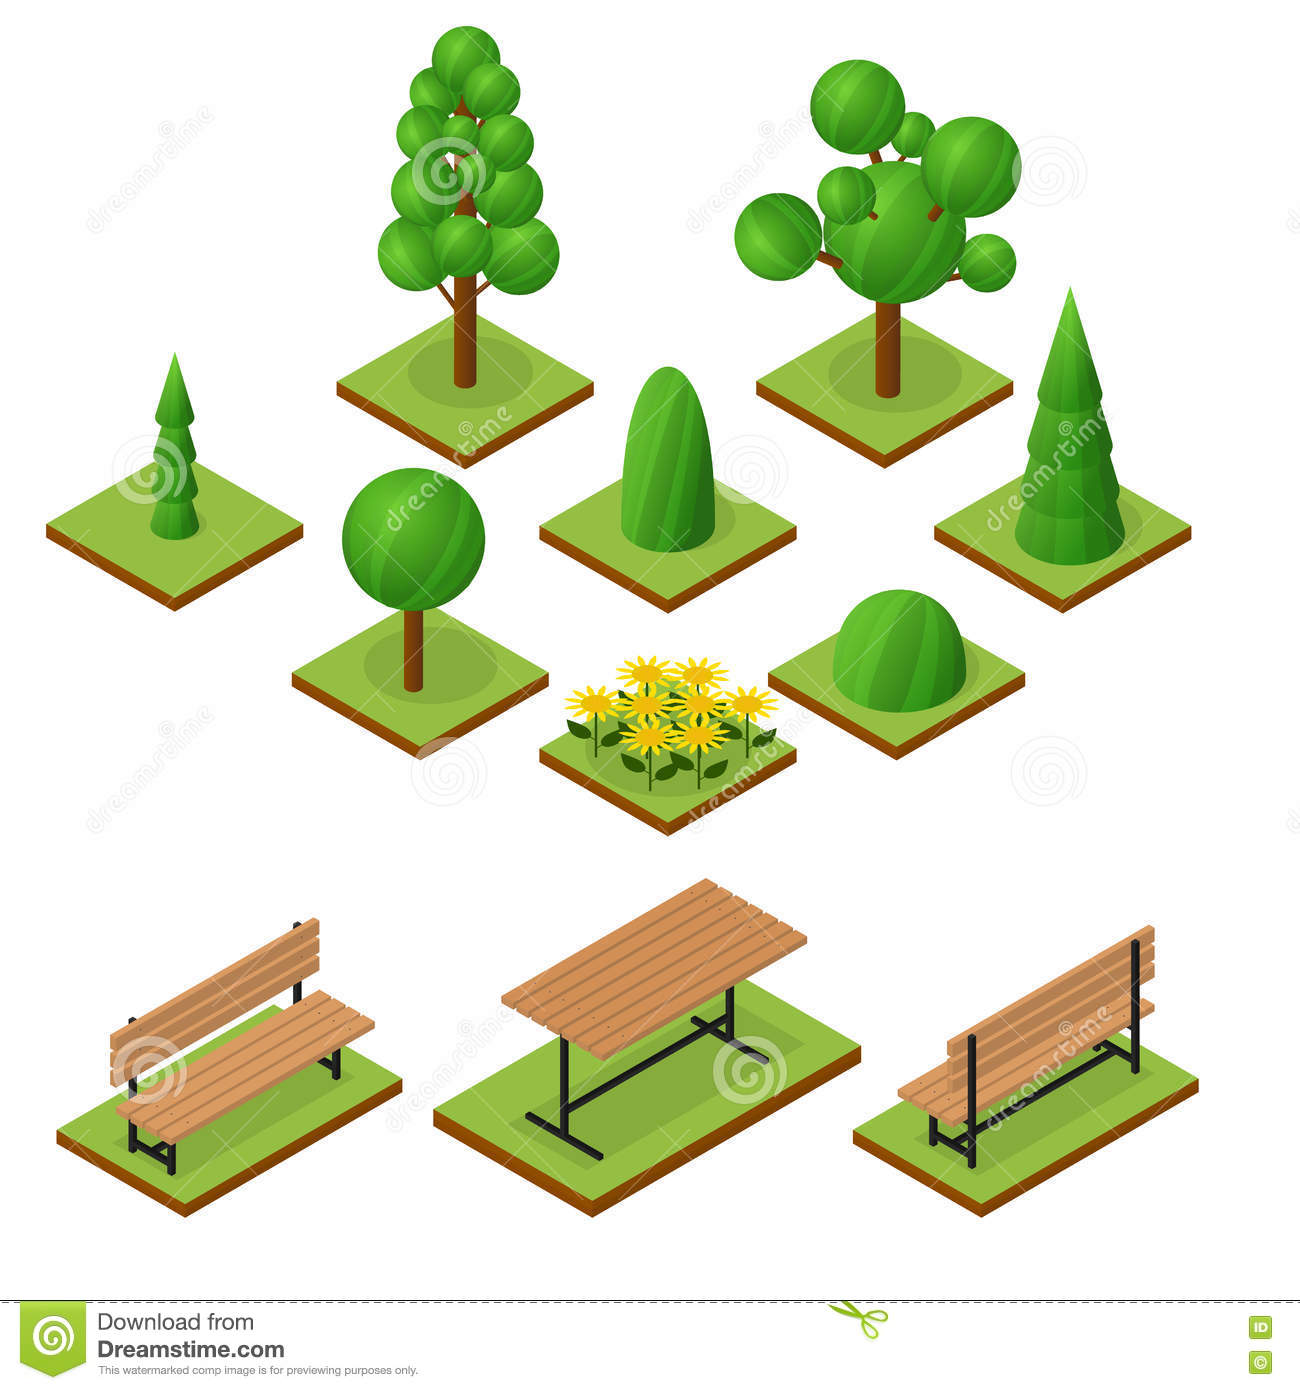 Set Of Trees And Bushes In Isometric View Stock Vector - Image: 72346567